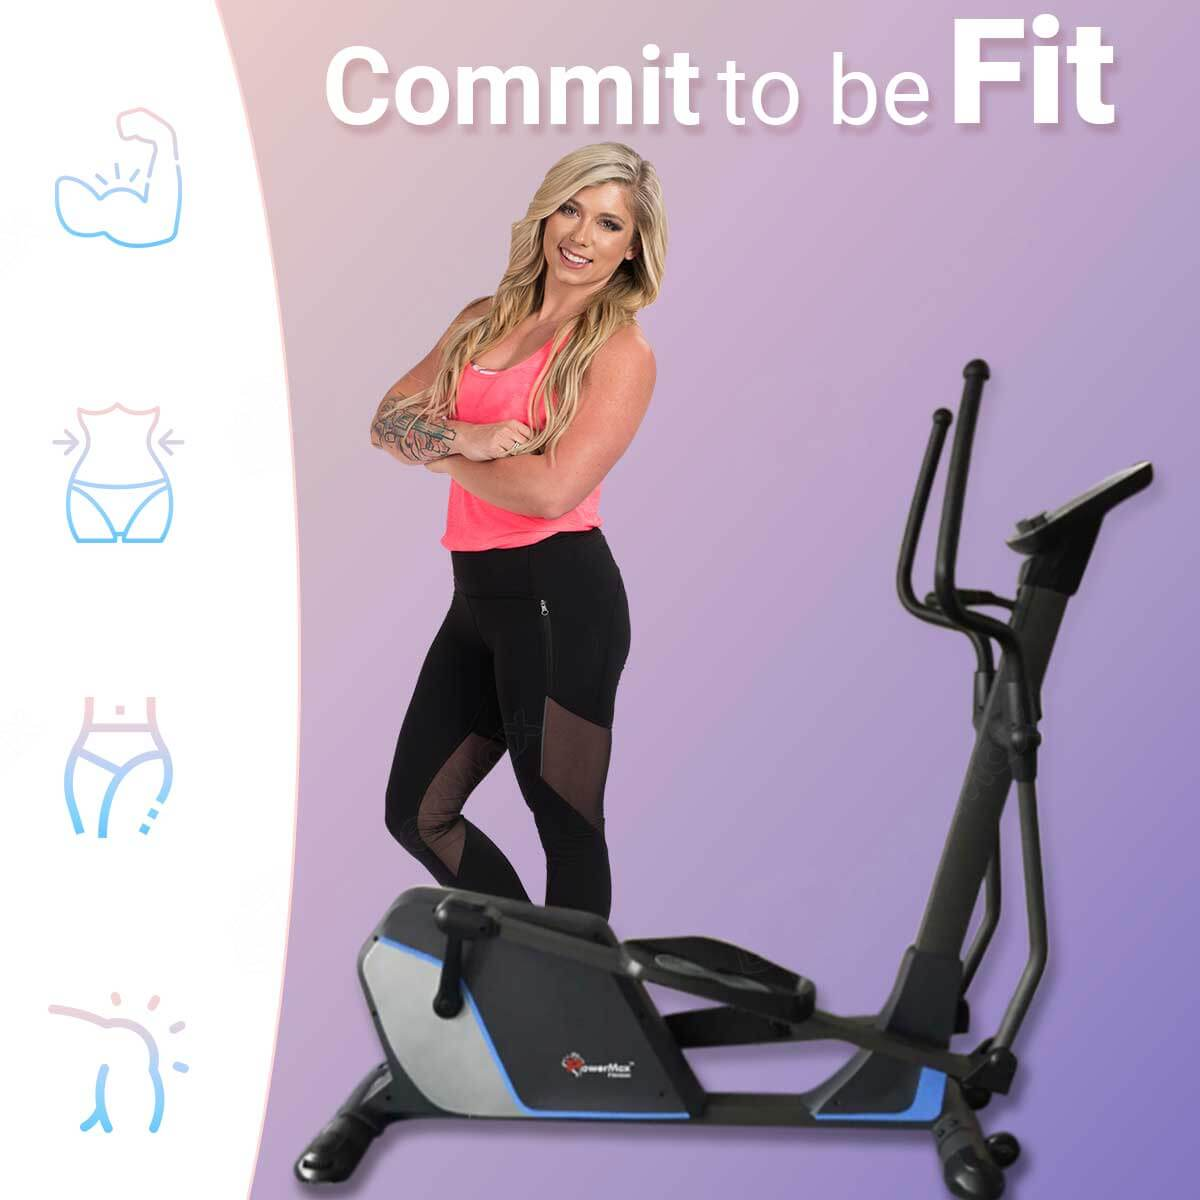 EH-600 EMS - Light Commercial Elliptical Trainer